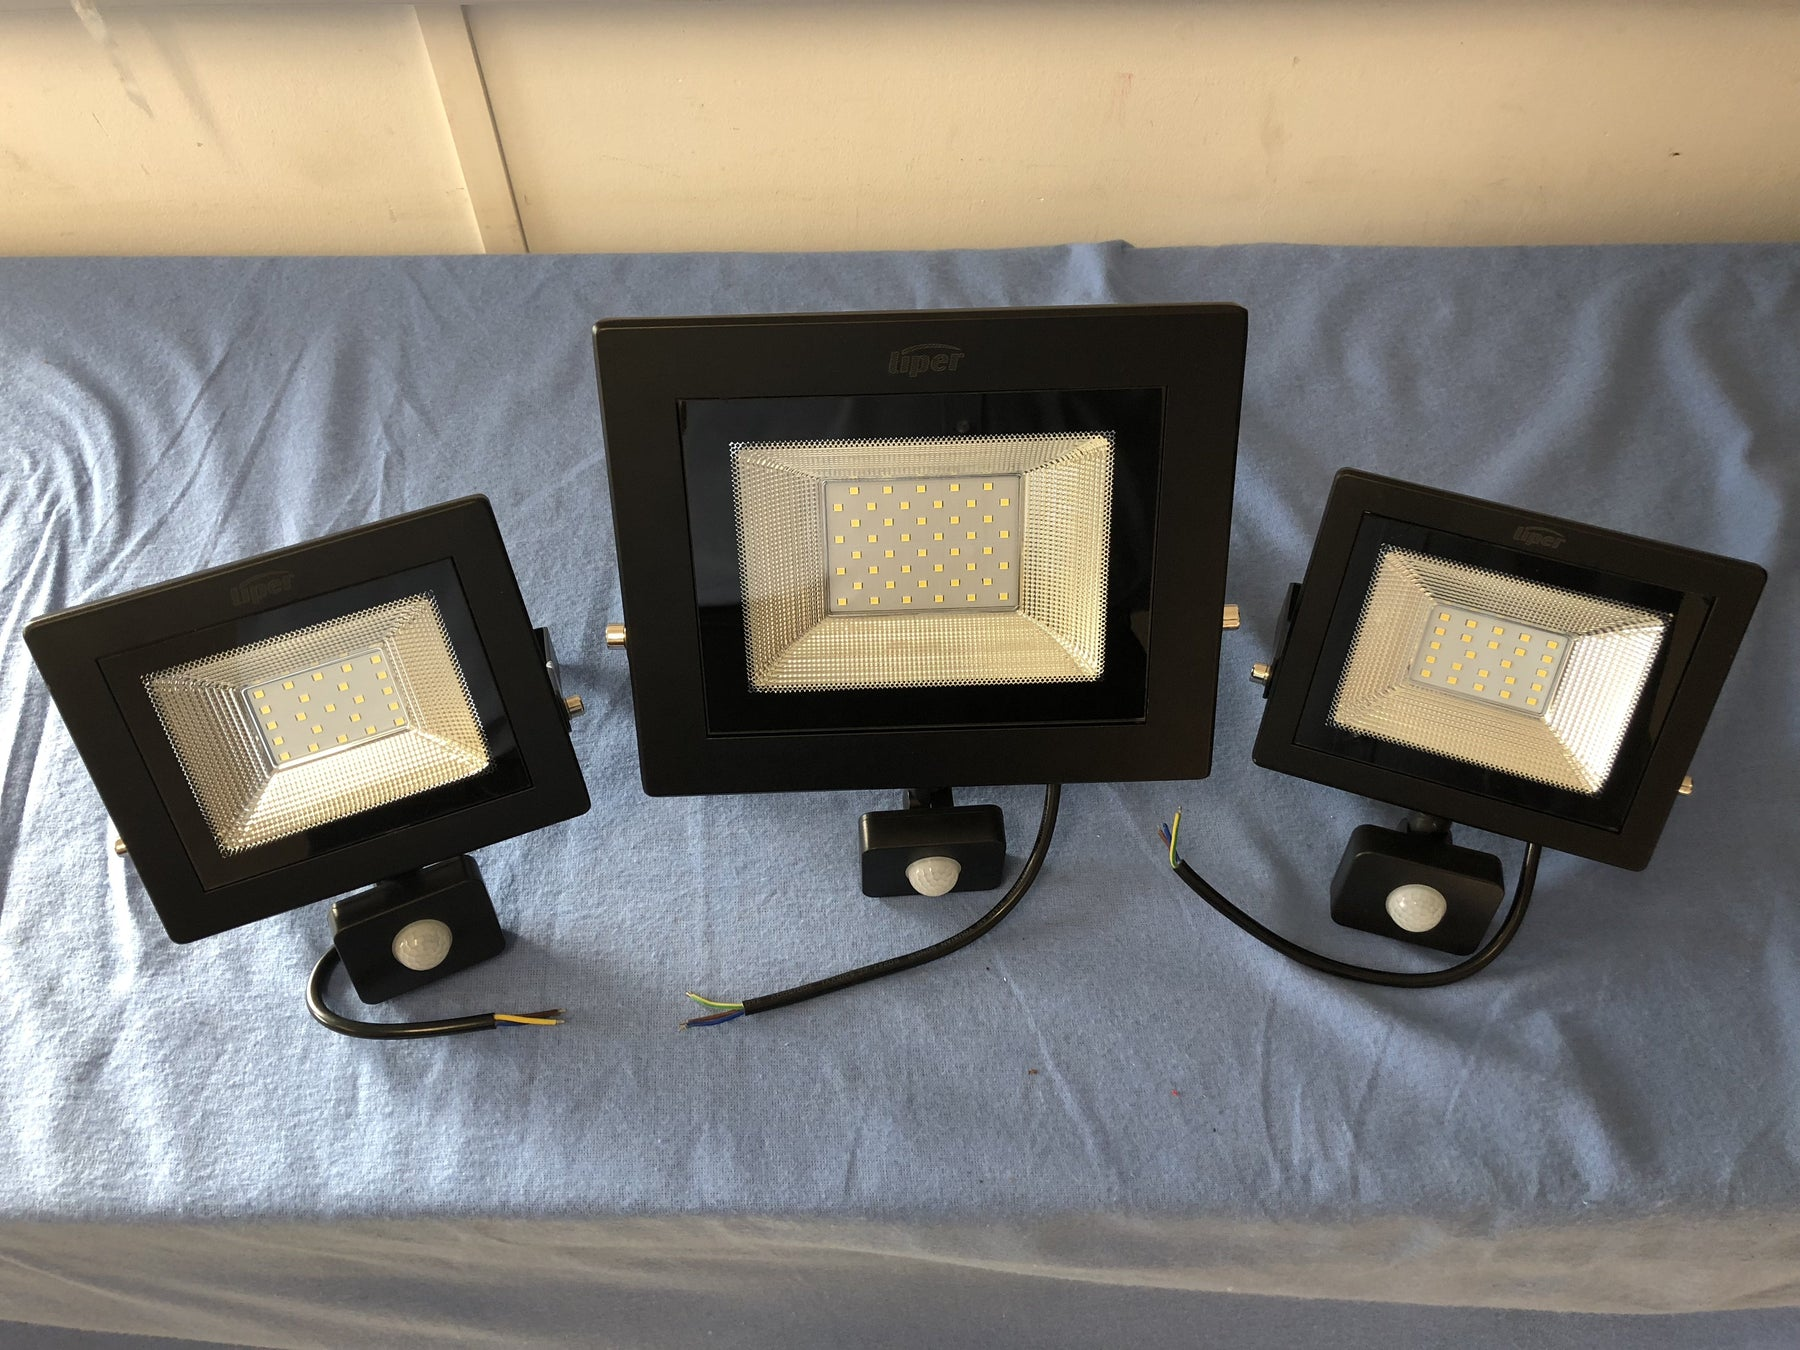 50 Watt Sensor LED Floodlight from the Batteryworldshop.com